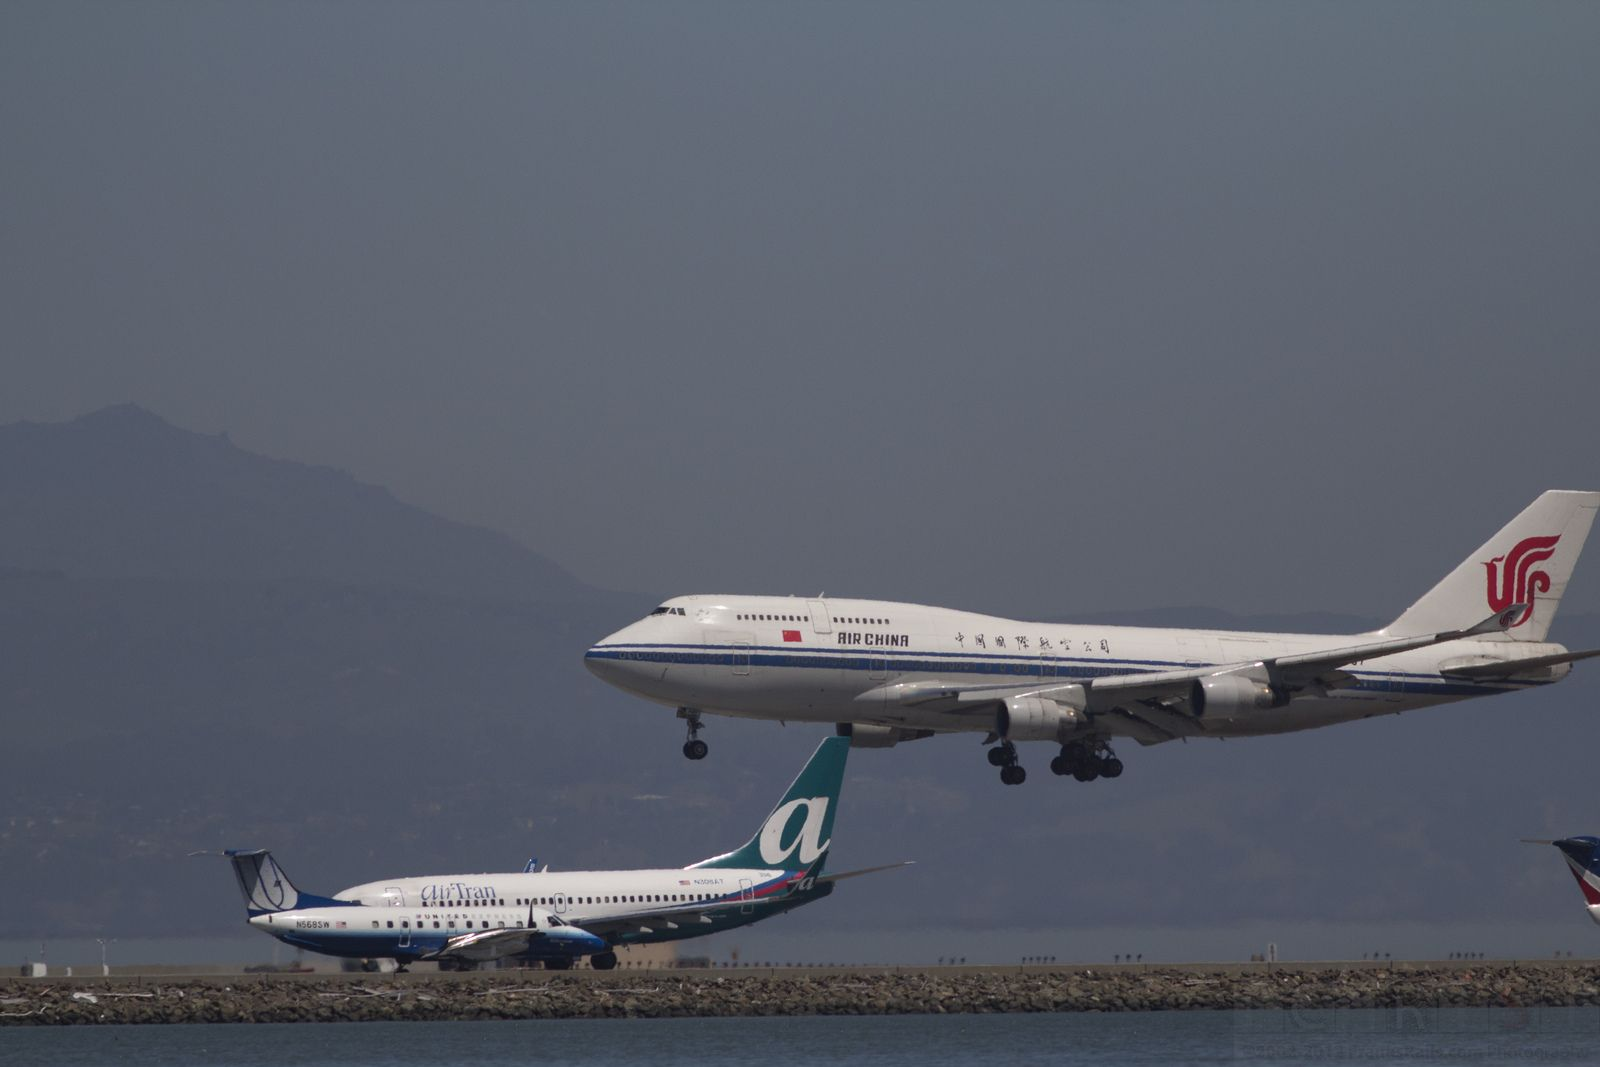 Large Jets In A Maze Air china, Jet, Boeing 747 400